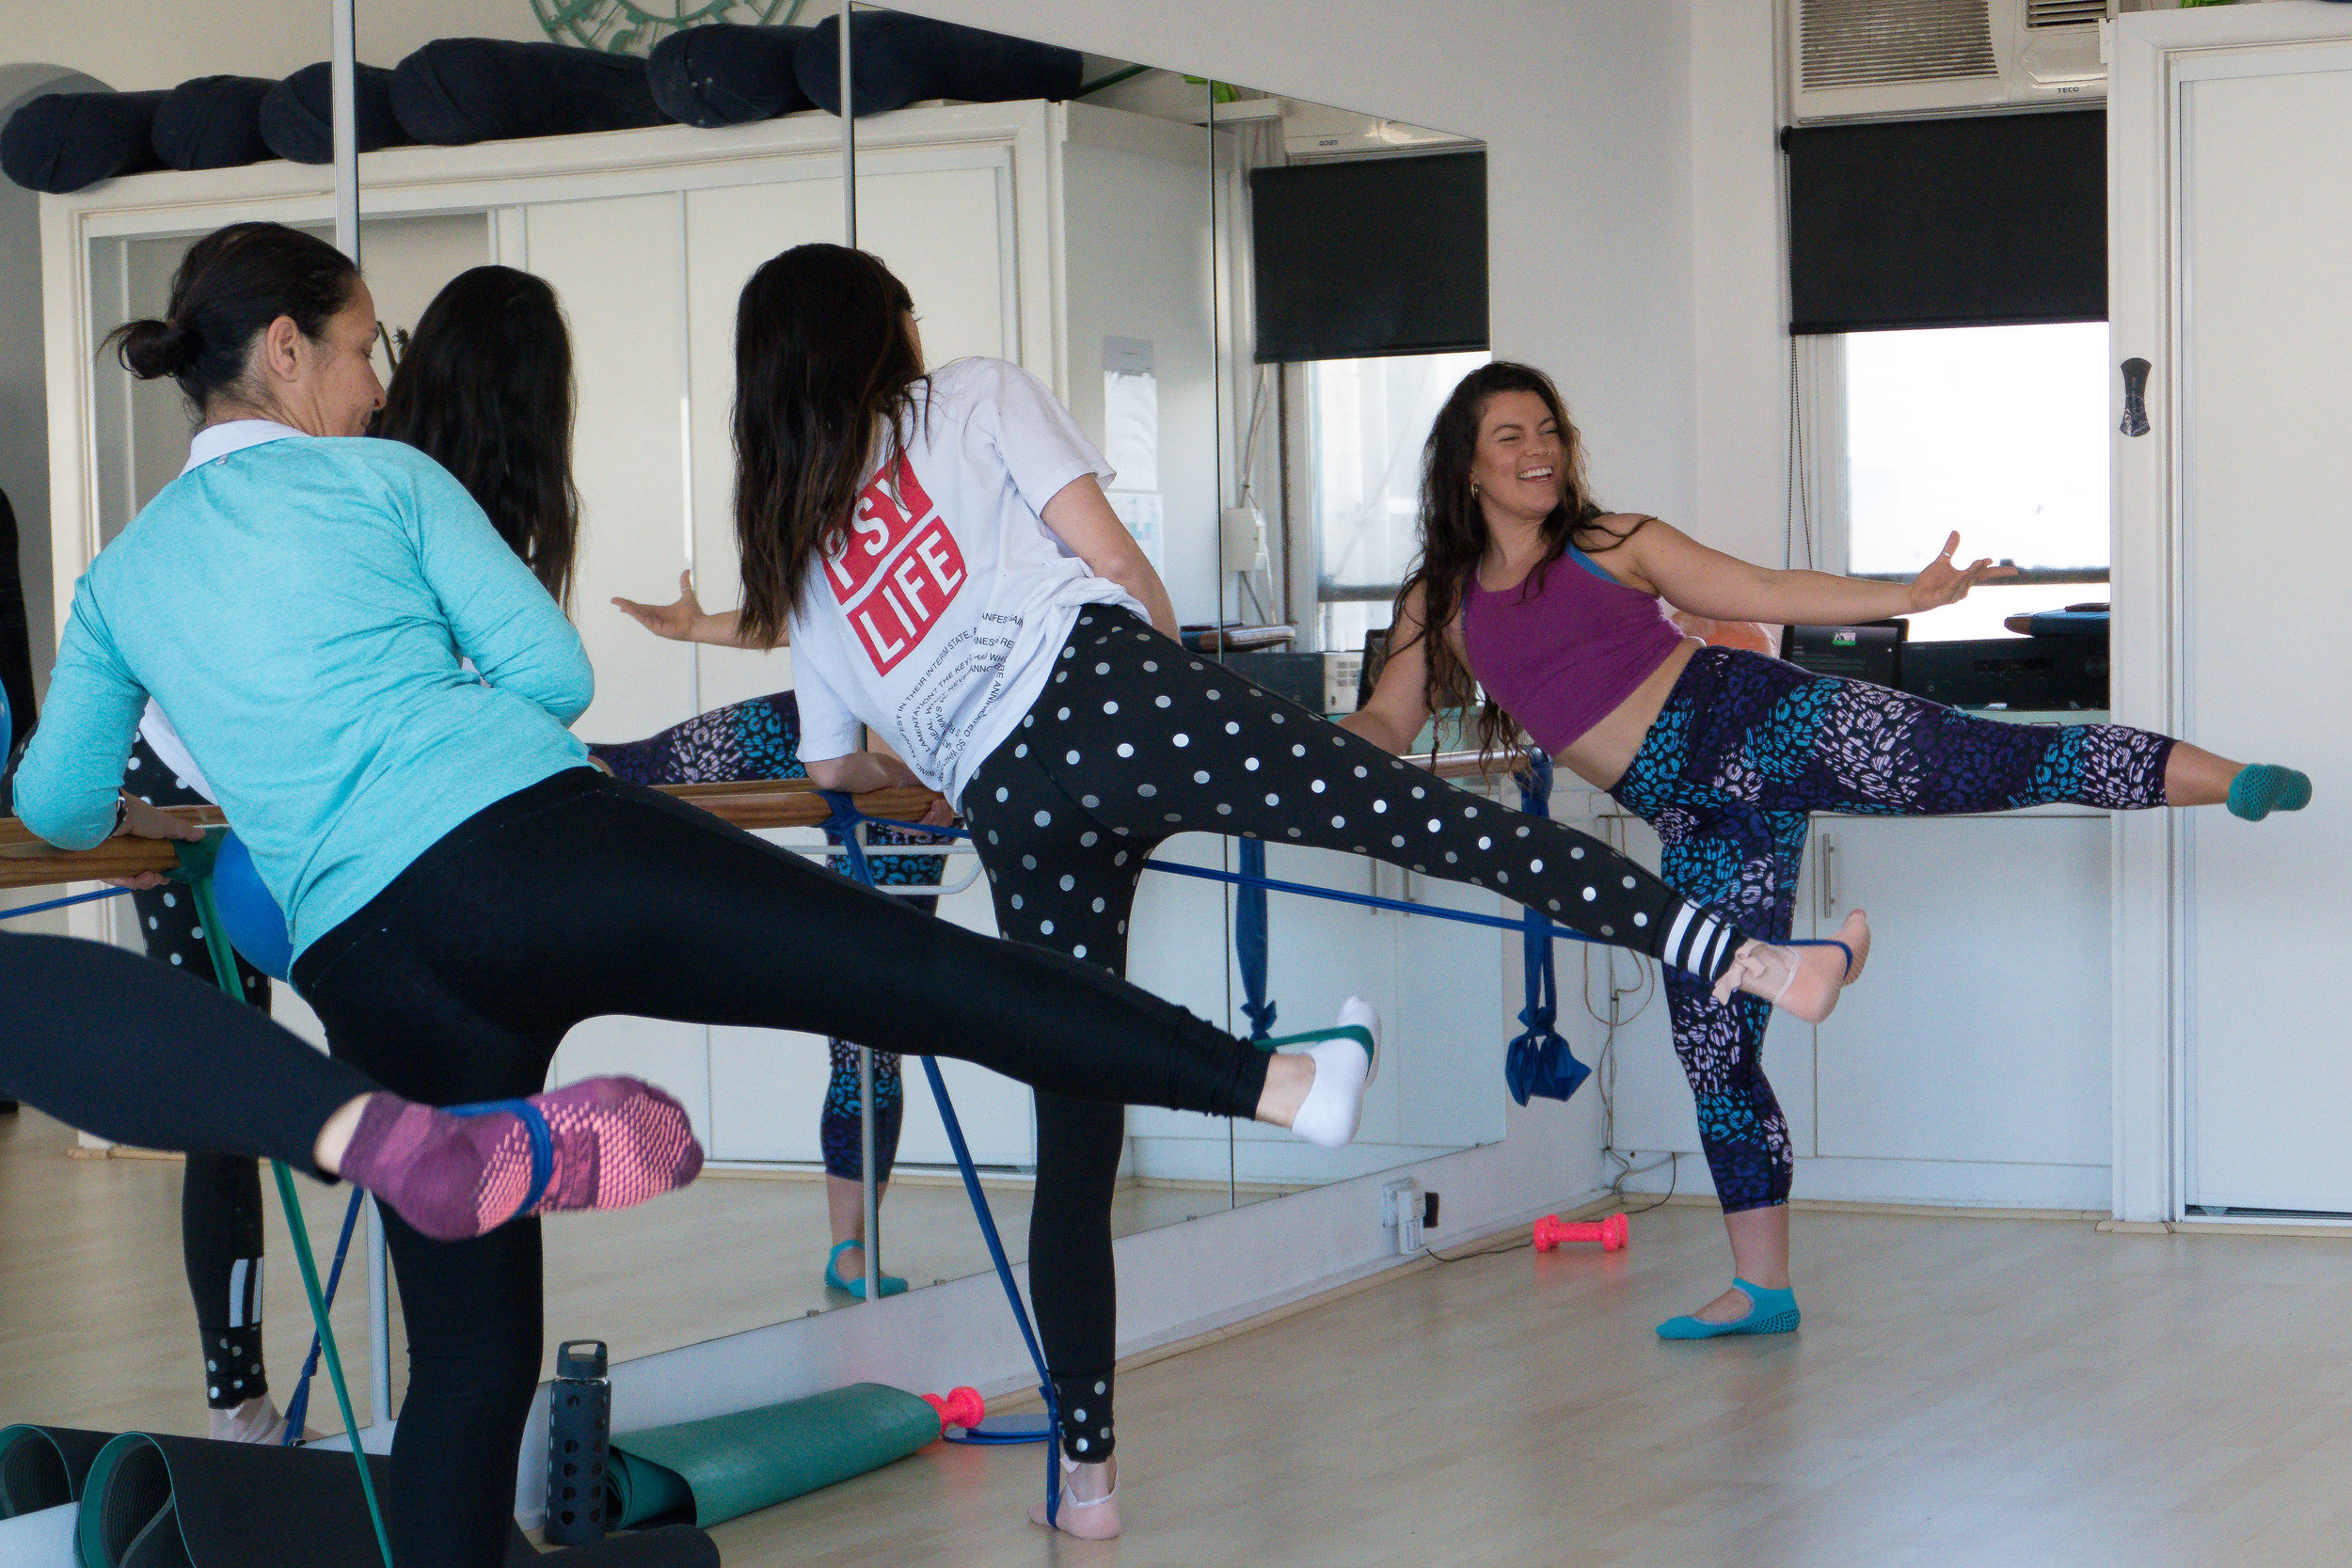 SPECIAL OFFER Winter Bootcamp 6 weeks unlimited classes - just $290 -